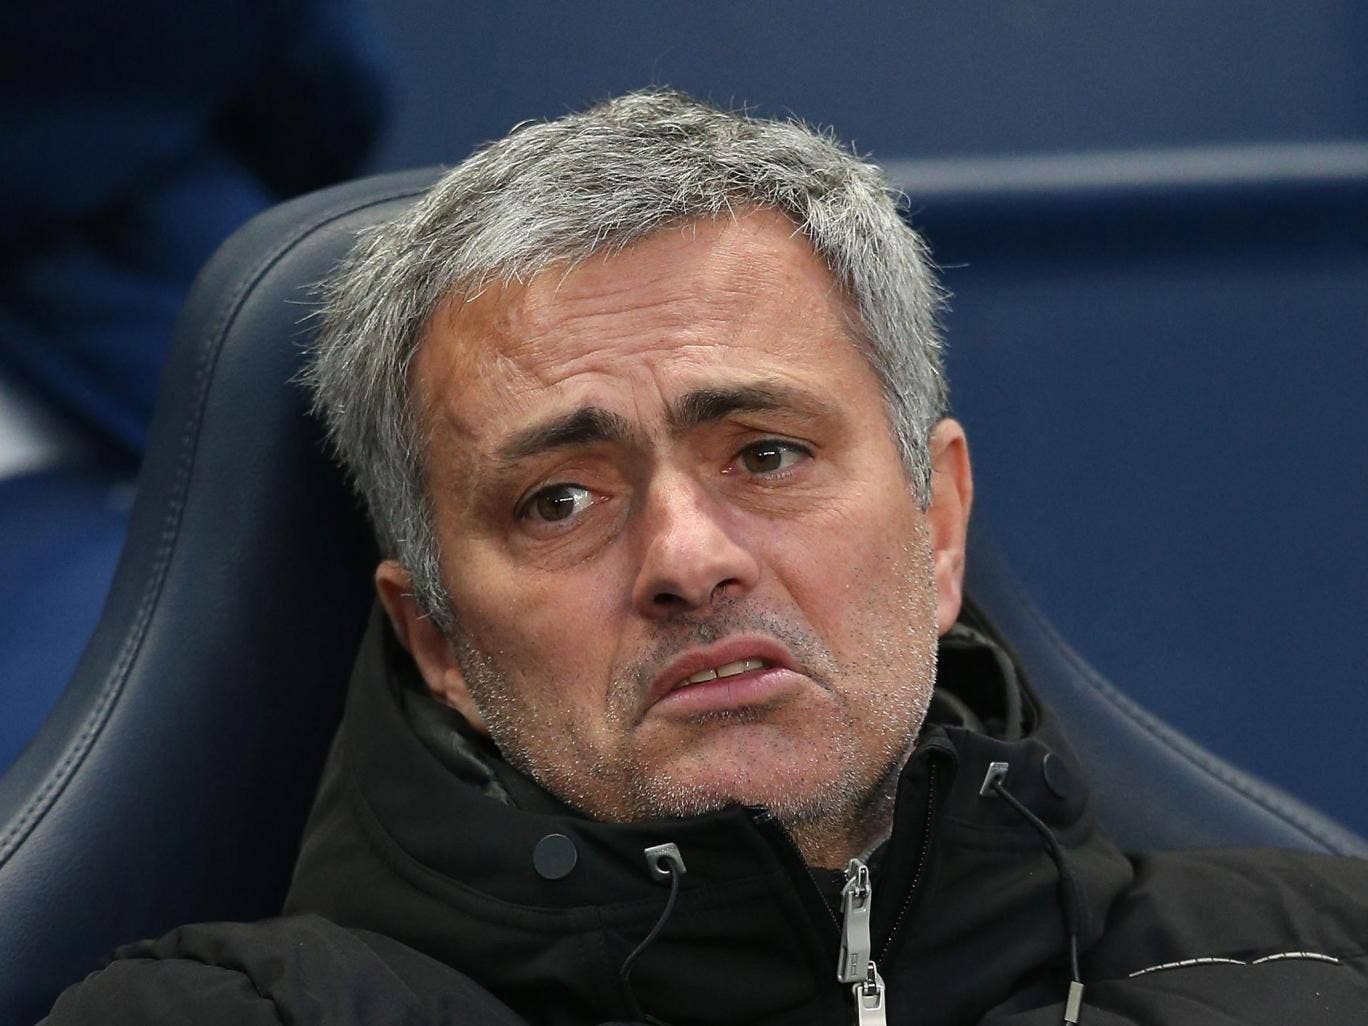 The Chelsea manager Jose Mourinho was barely willing to talk about anything outside of Stamford Bridge yesterday